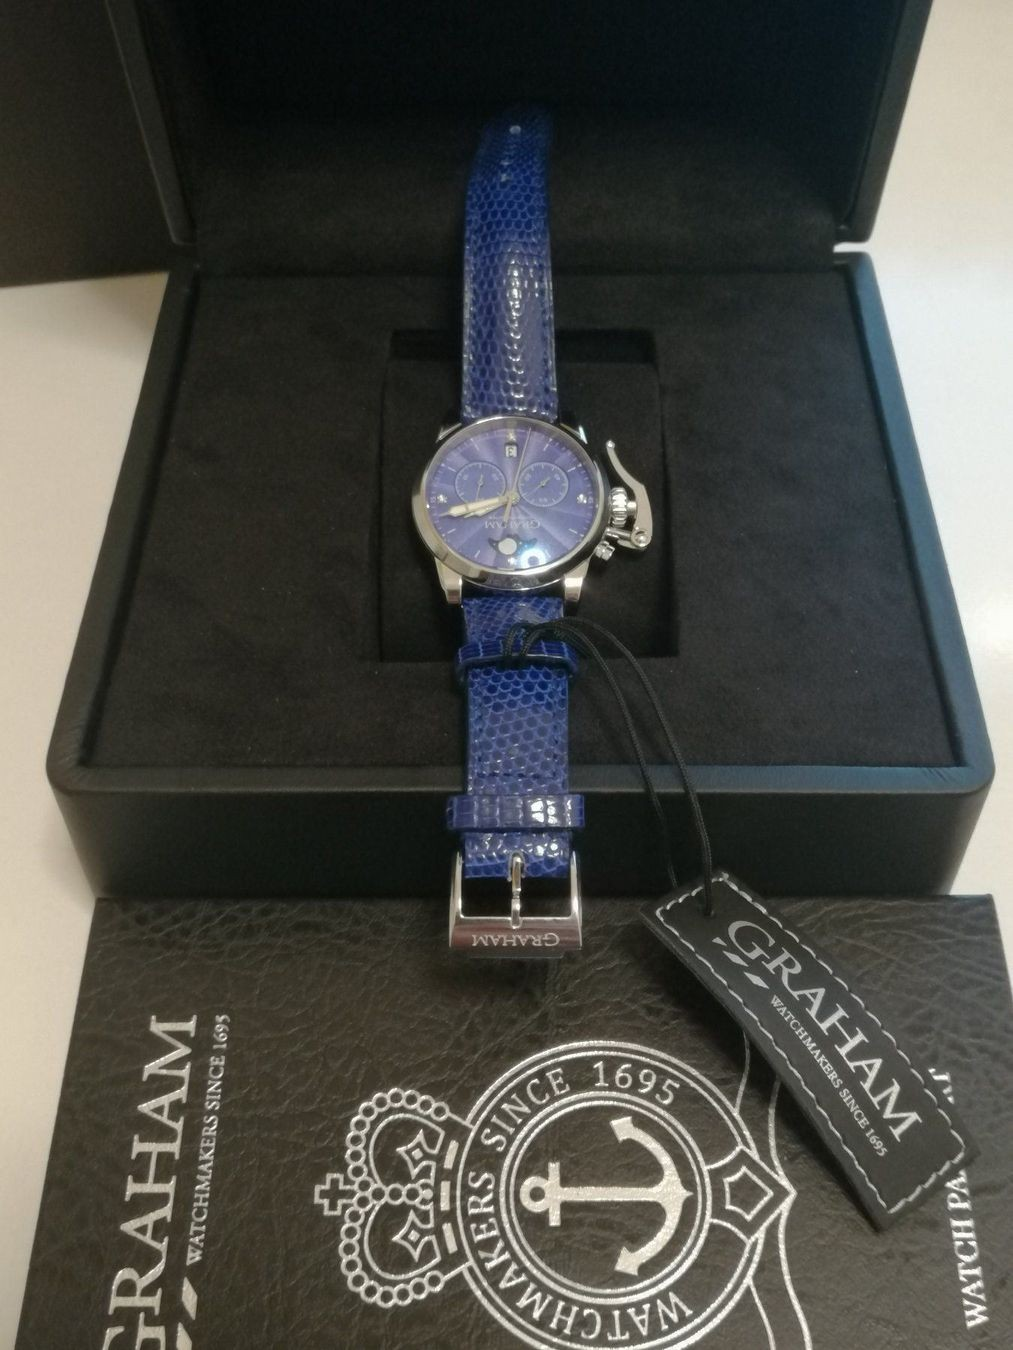 Graham / Chronofighter Lady Moon - Lady's Steel Wrist Watch - Image 5 of 15